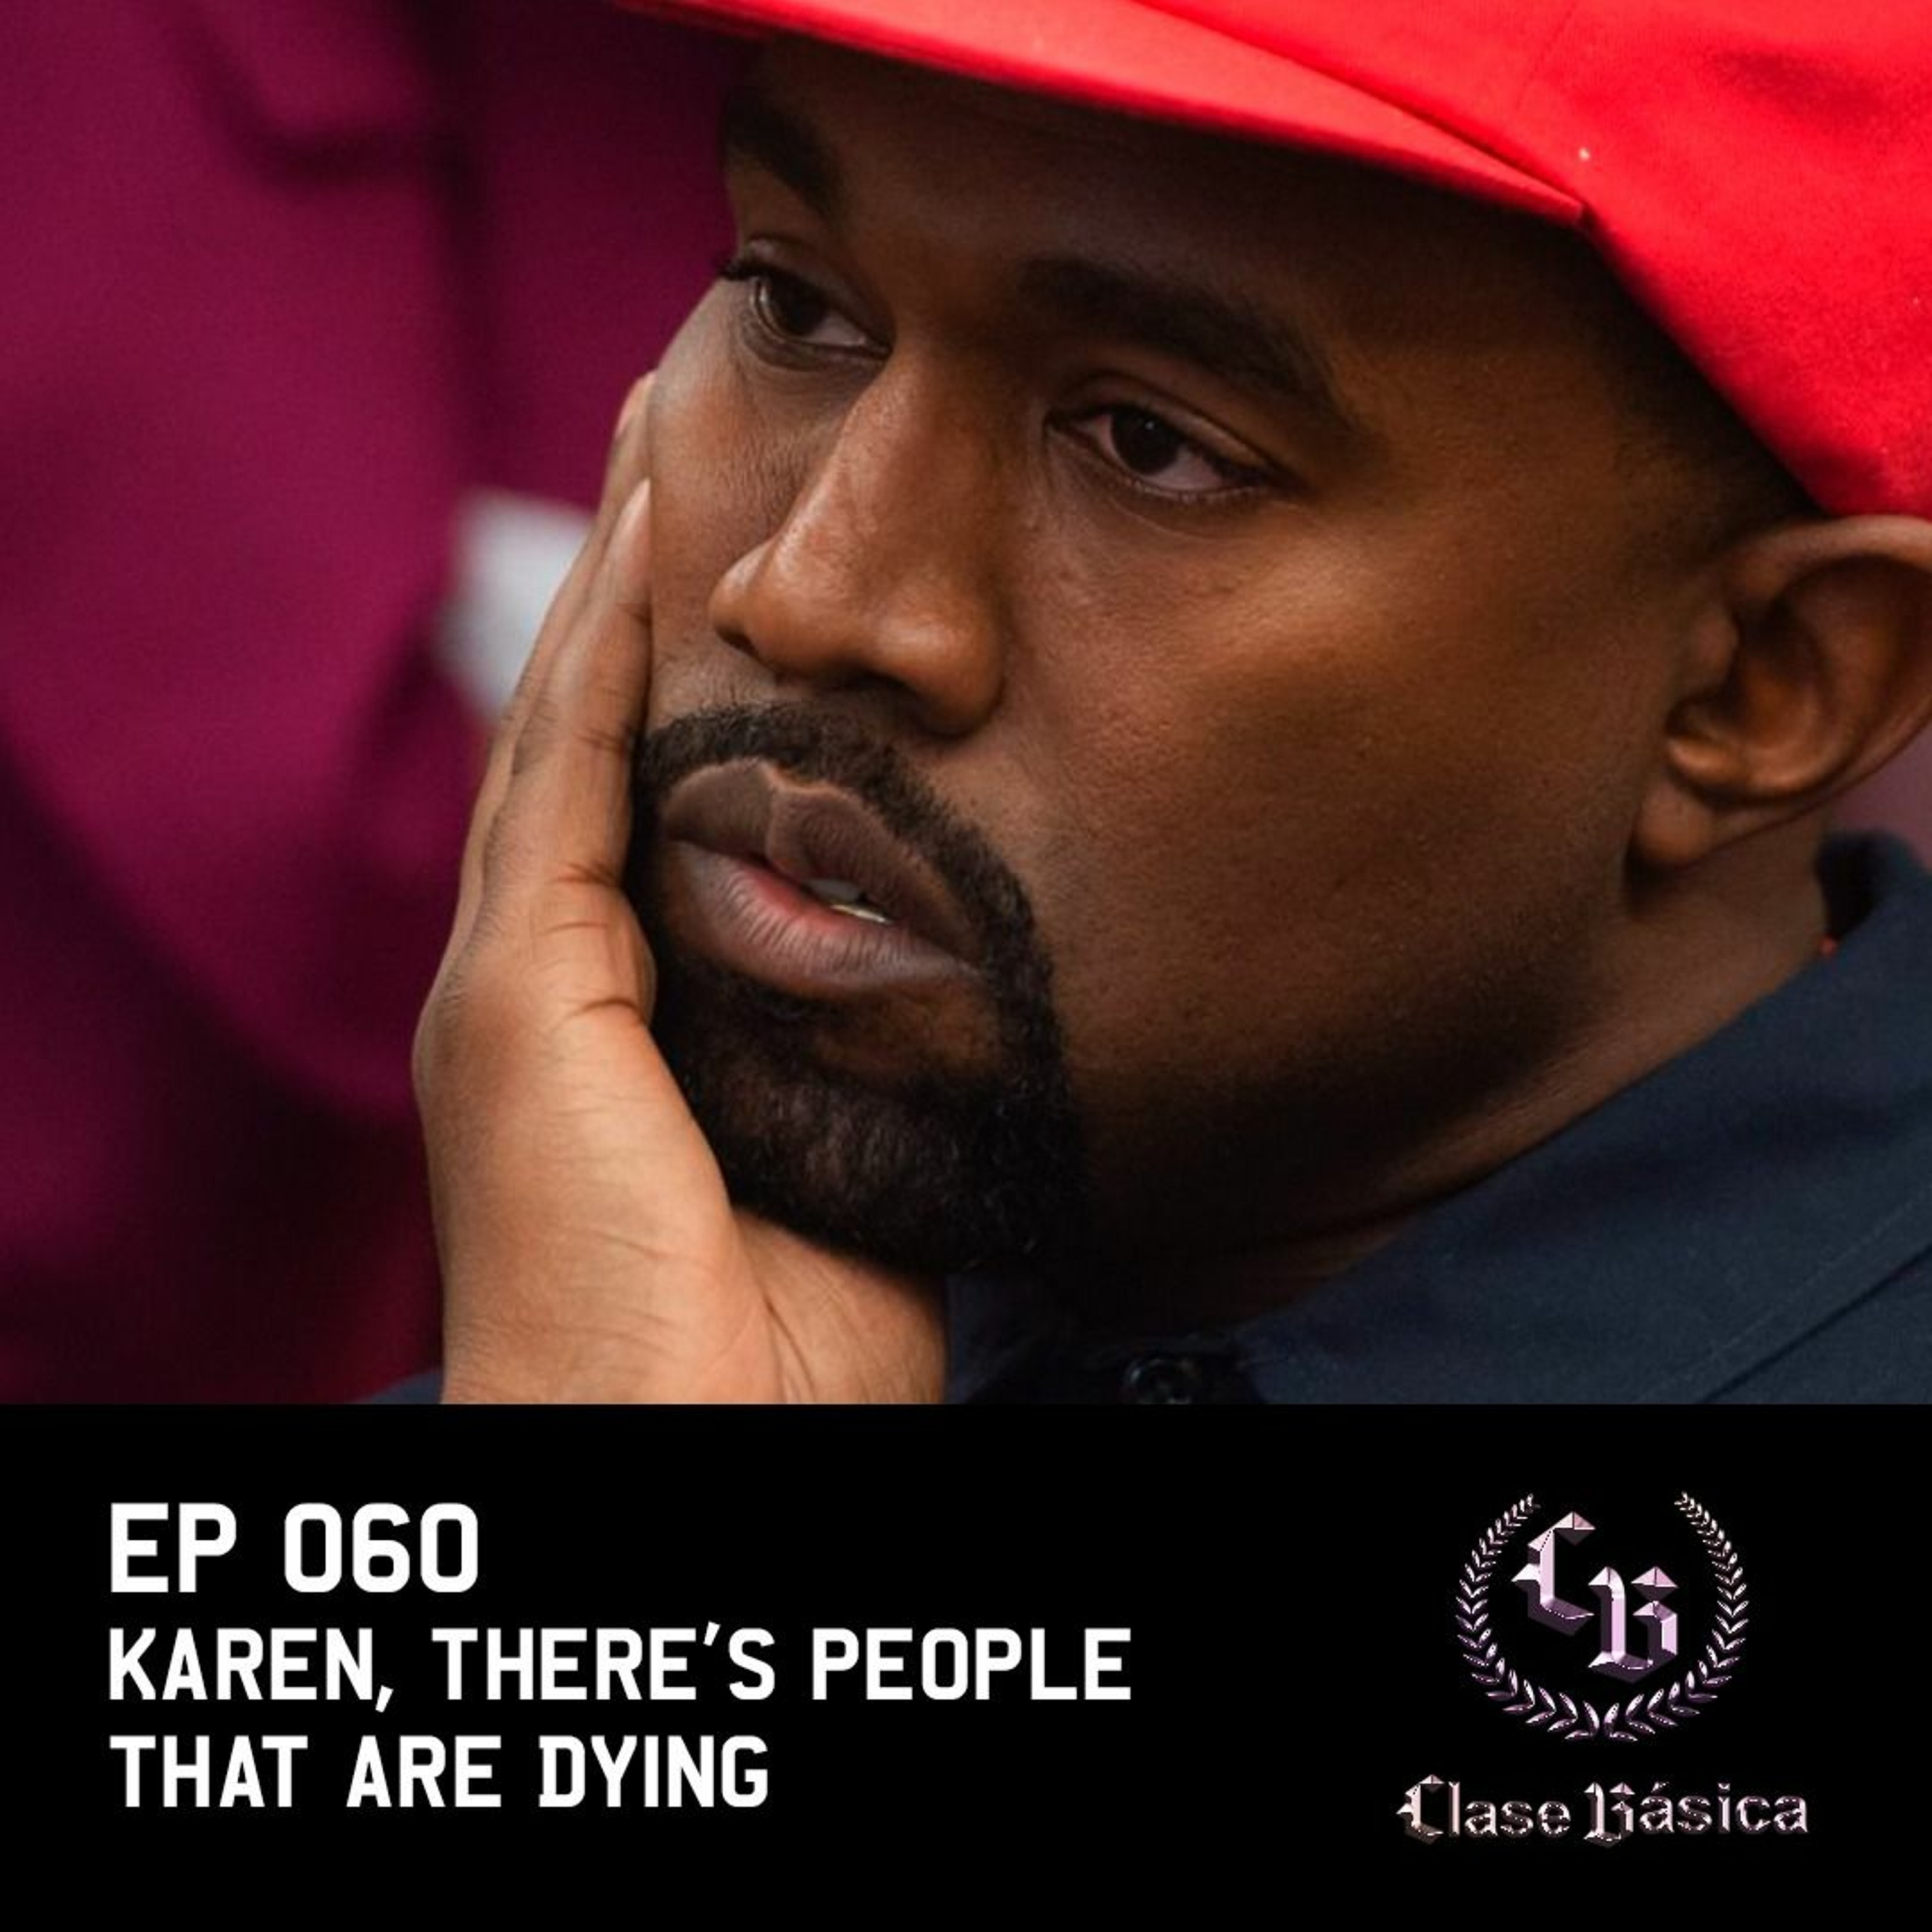 #060 Karen, there's people that are dying